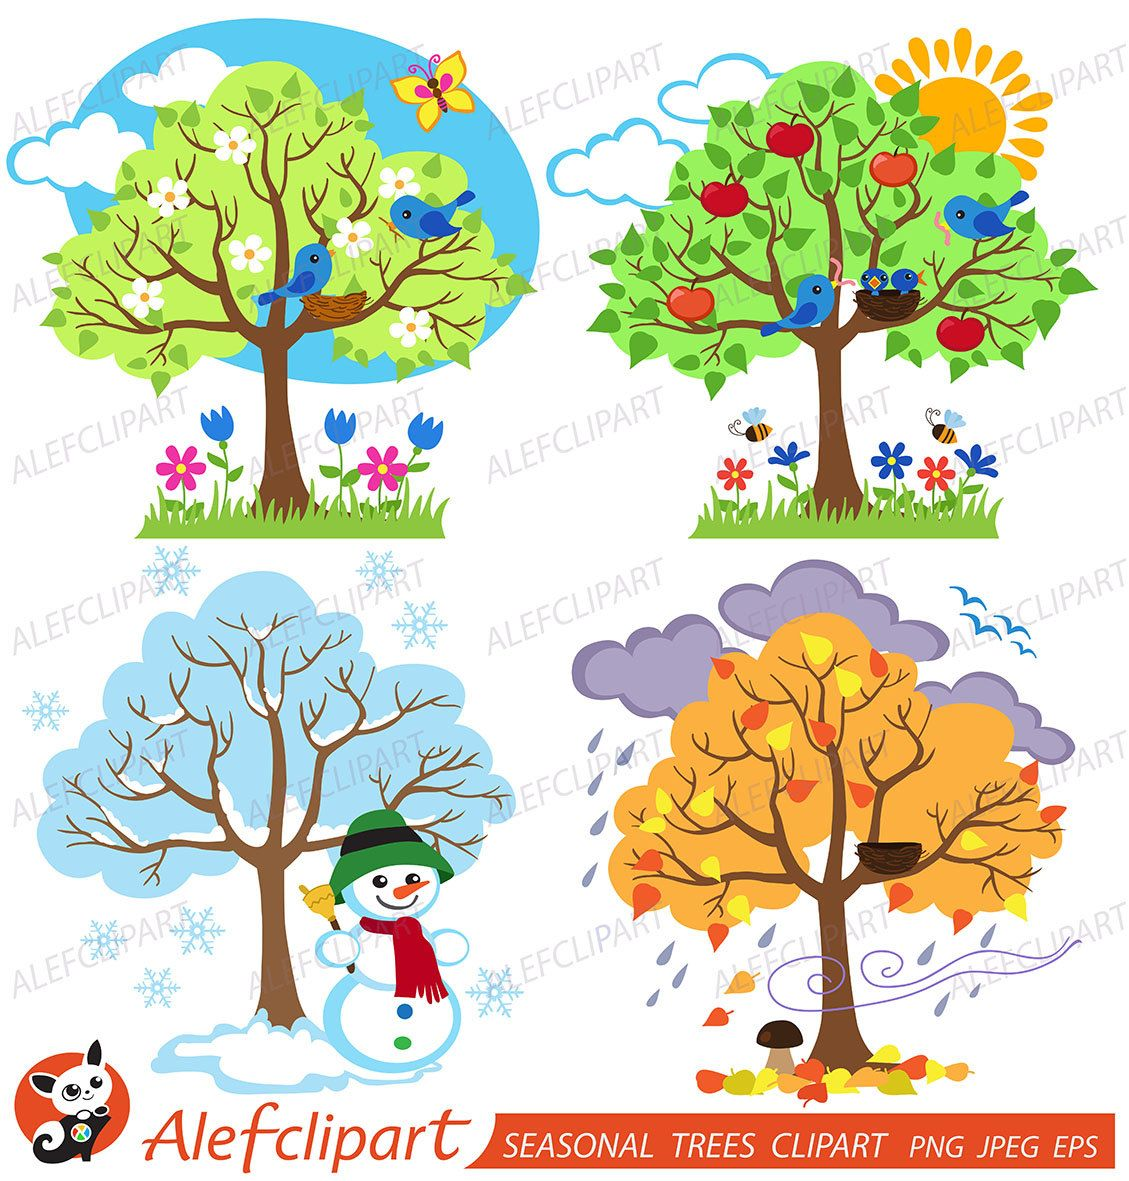 Four Seasons Trees Clipart Seasonal Trees and Birds Clipart.